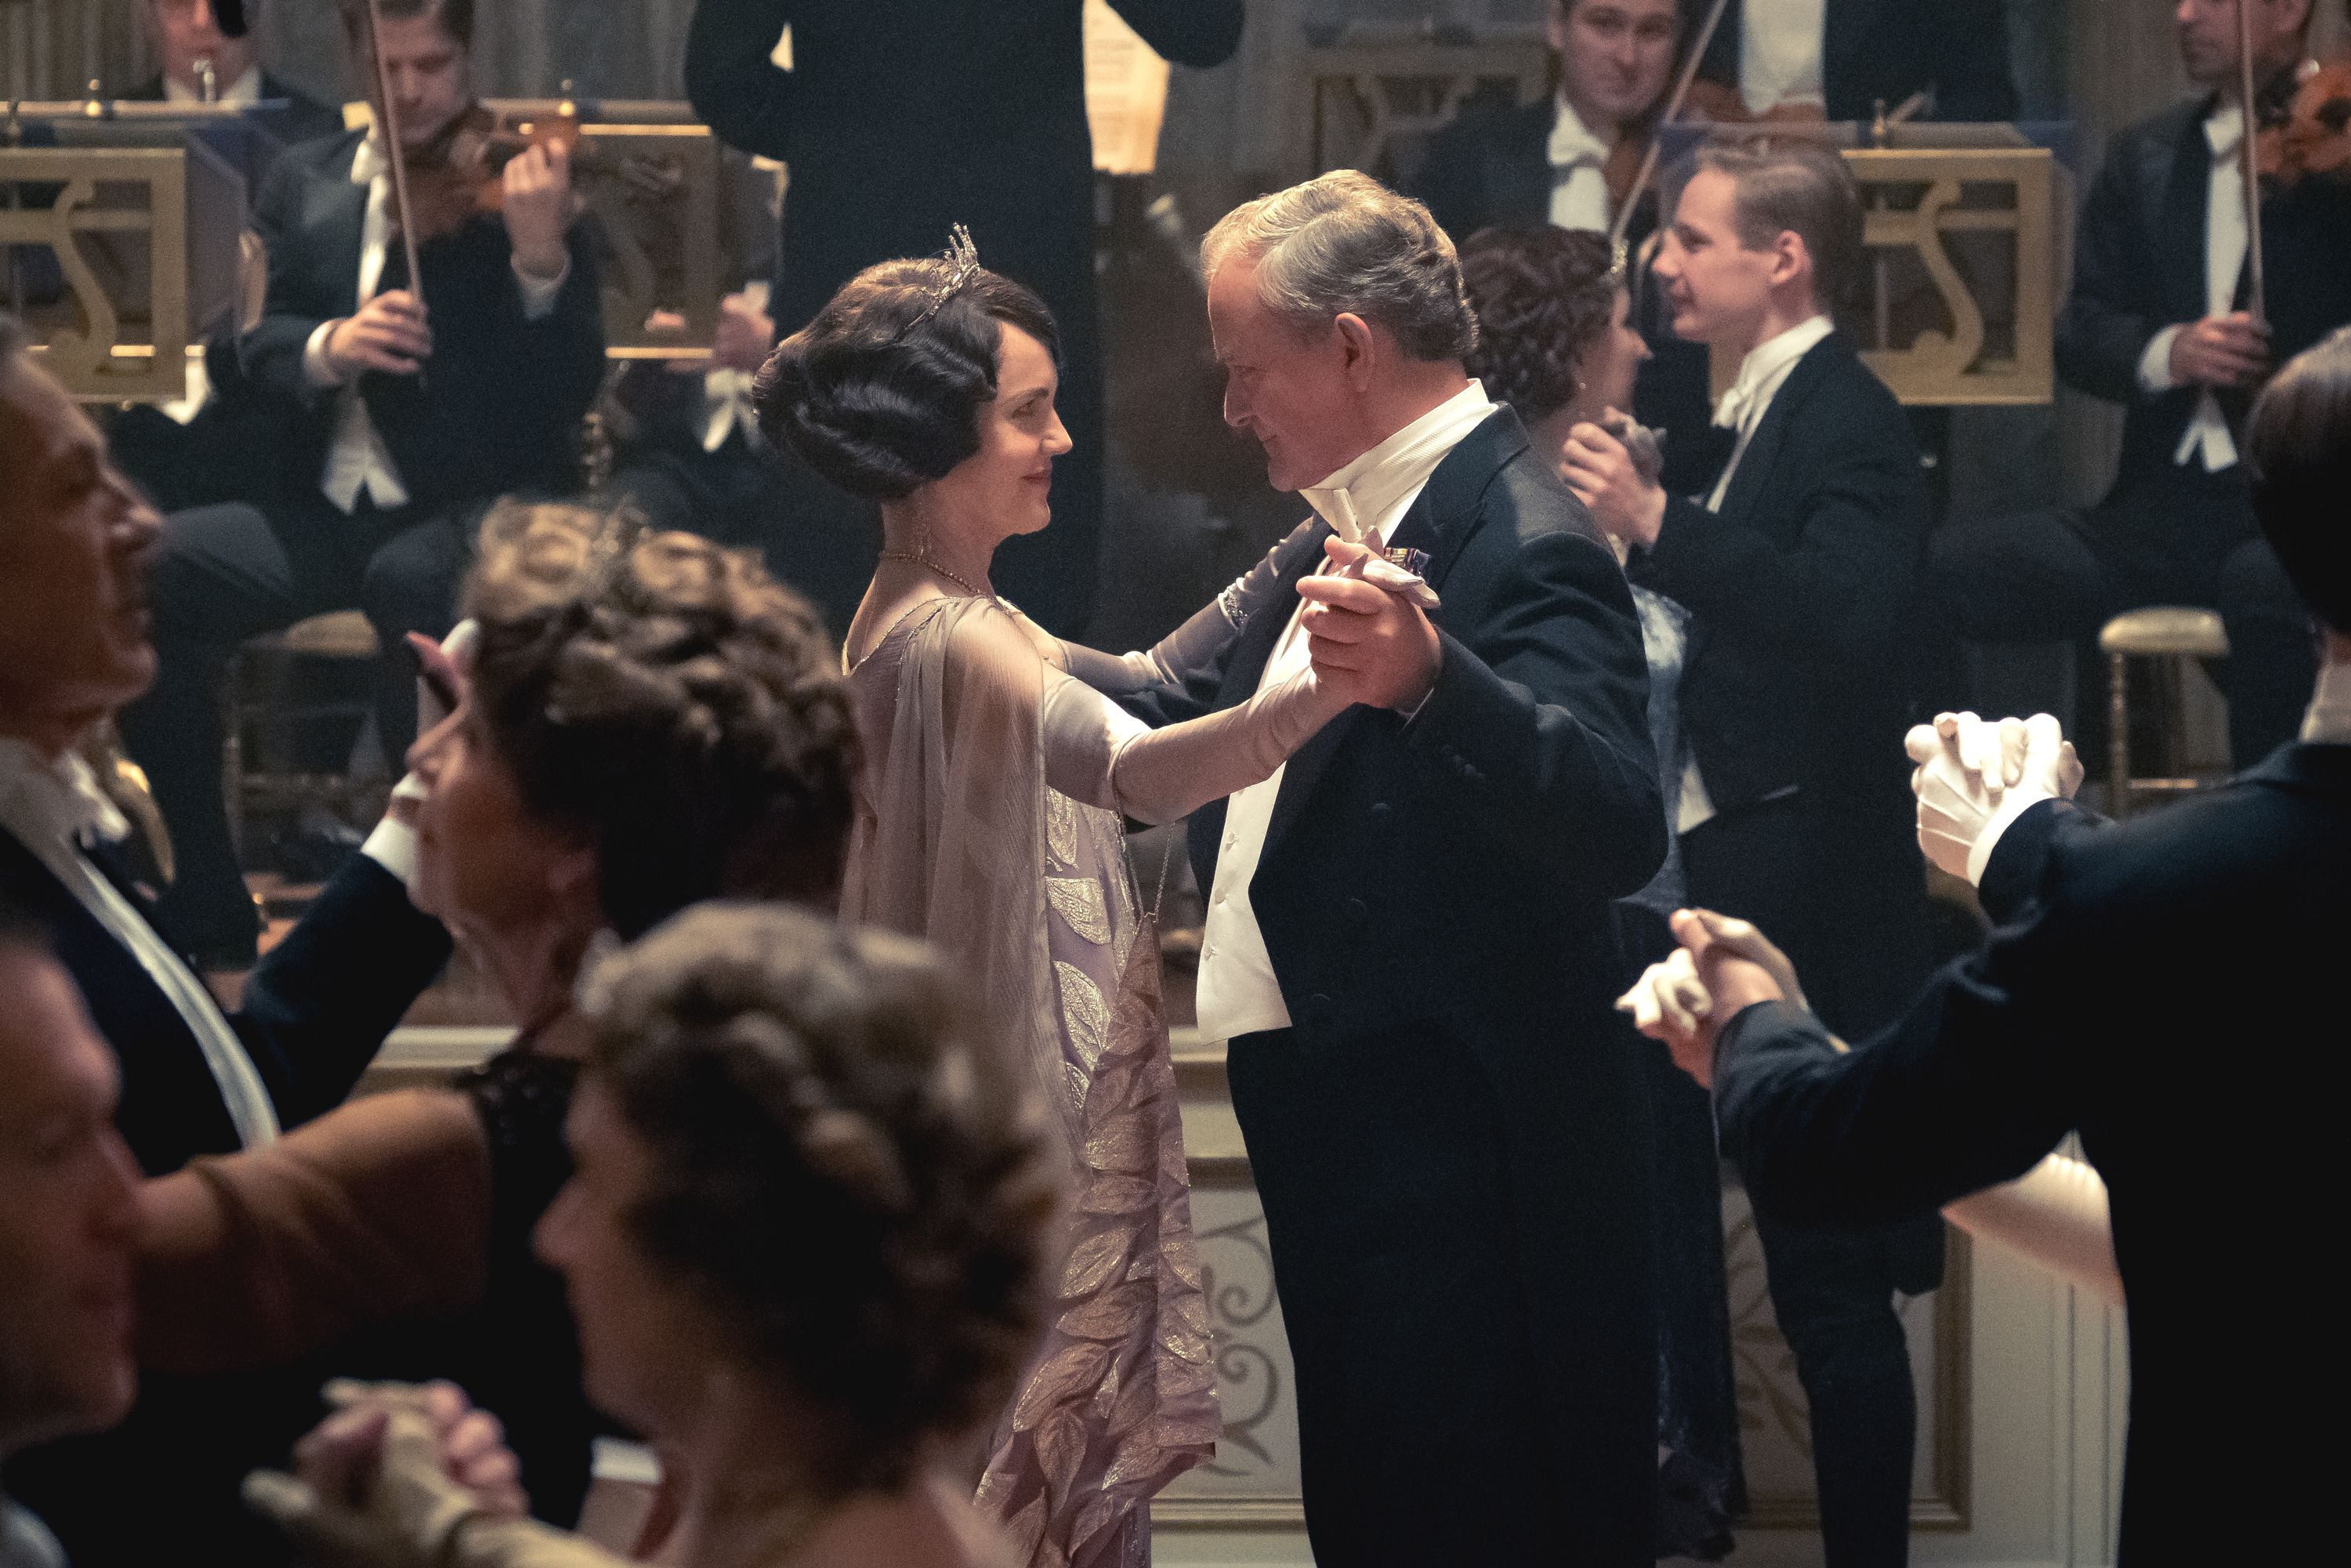 Downton Abbey cast reveal who they wanted back for the movie